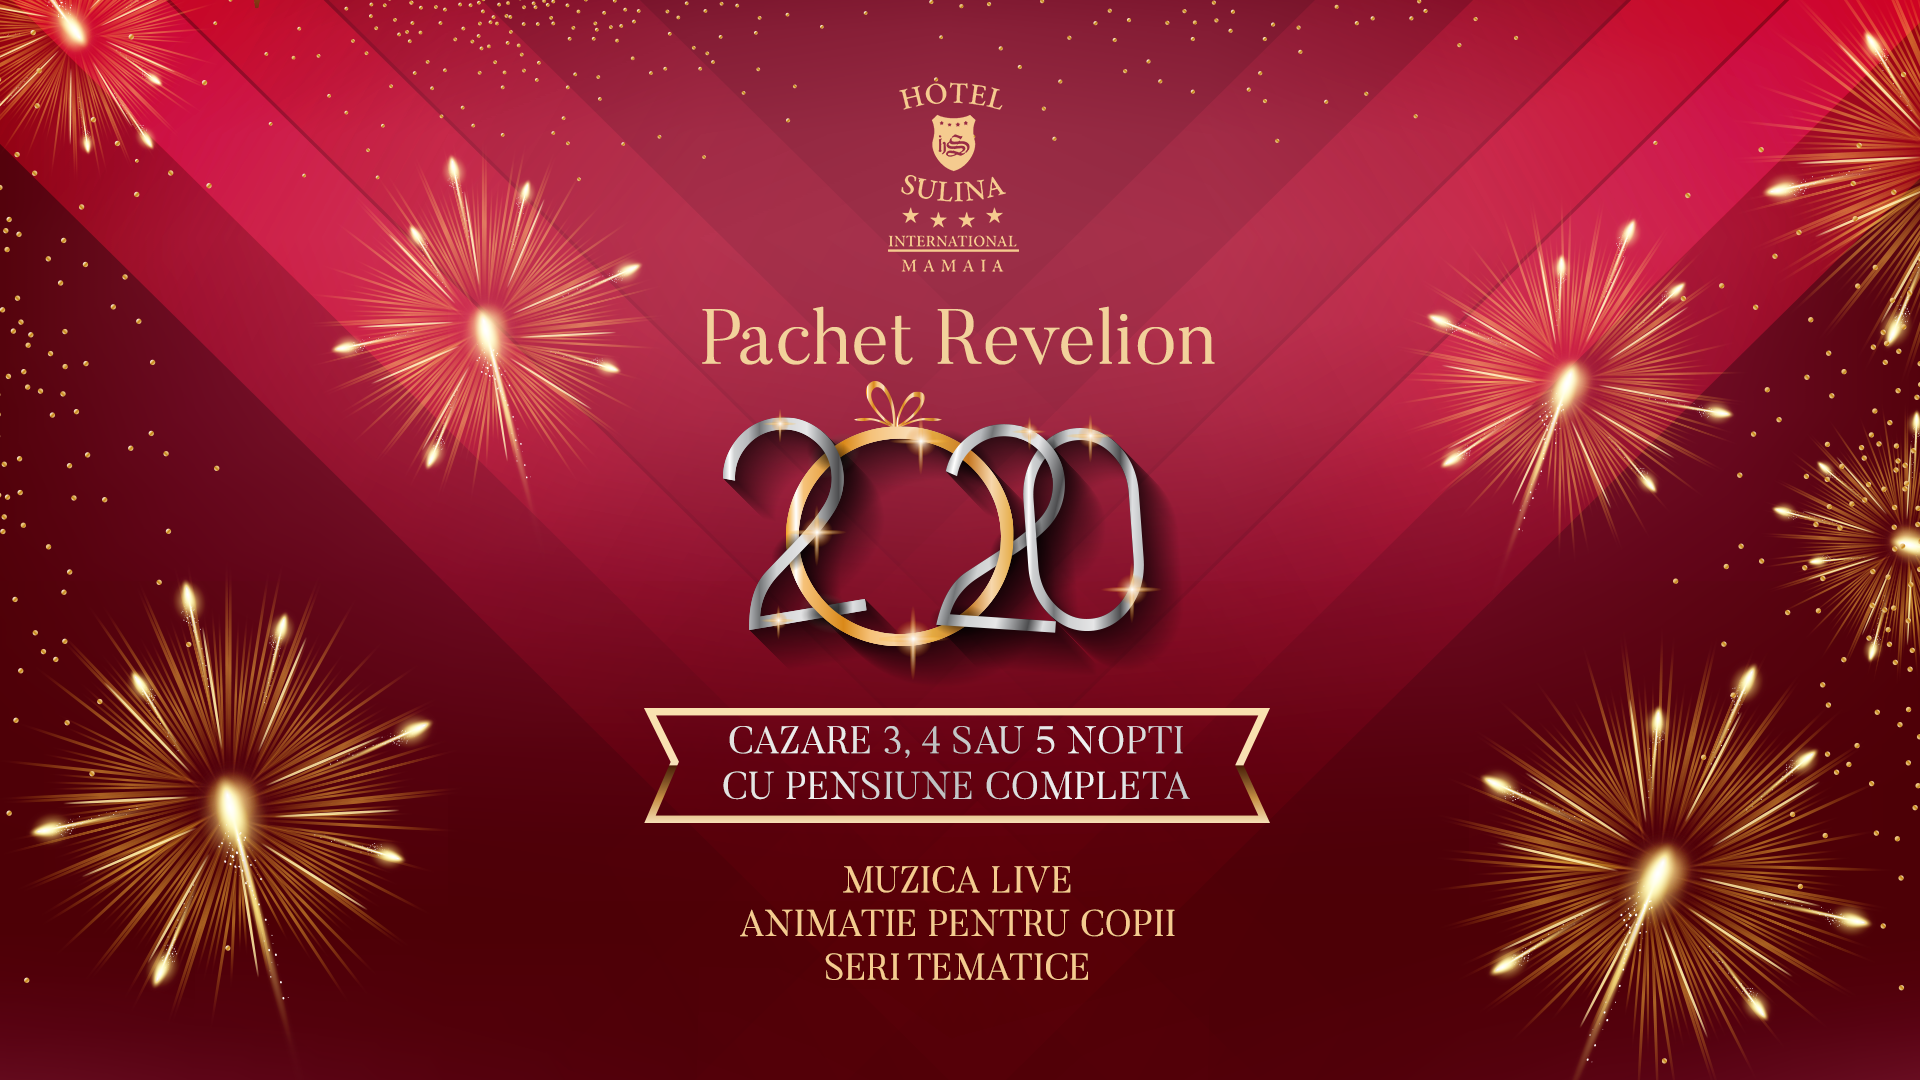 Revelion 2020 la Hotel Sulina International - Mamaia